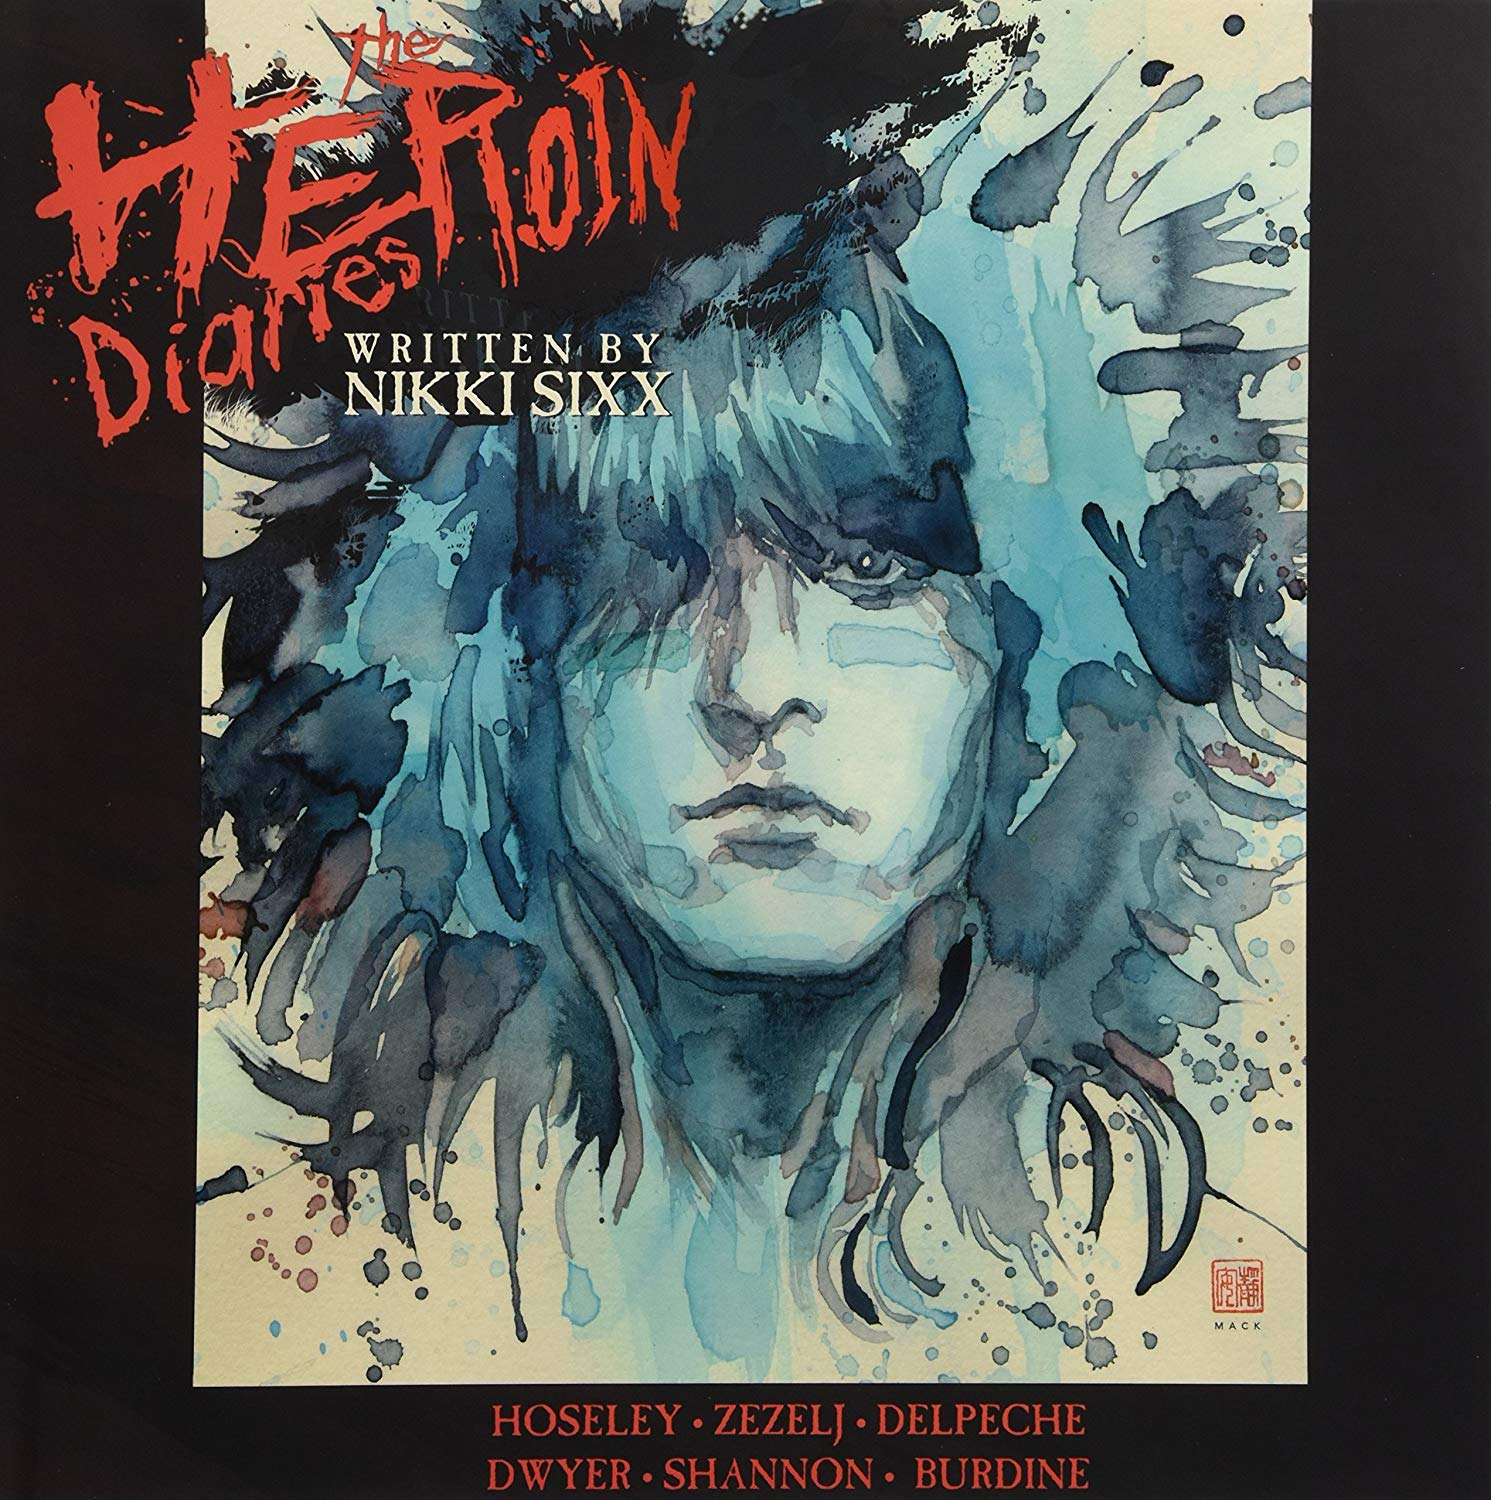 Nikki Sixx - Heroin Diaries - Black Edition